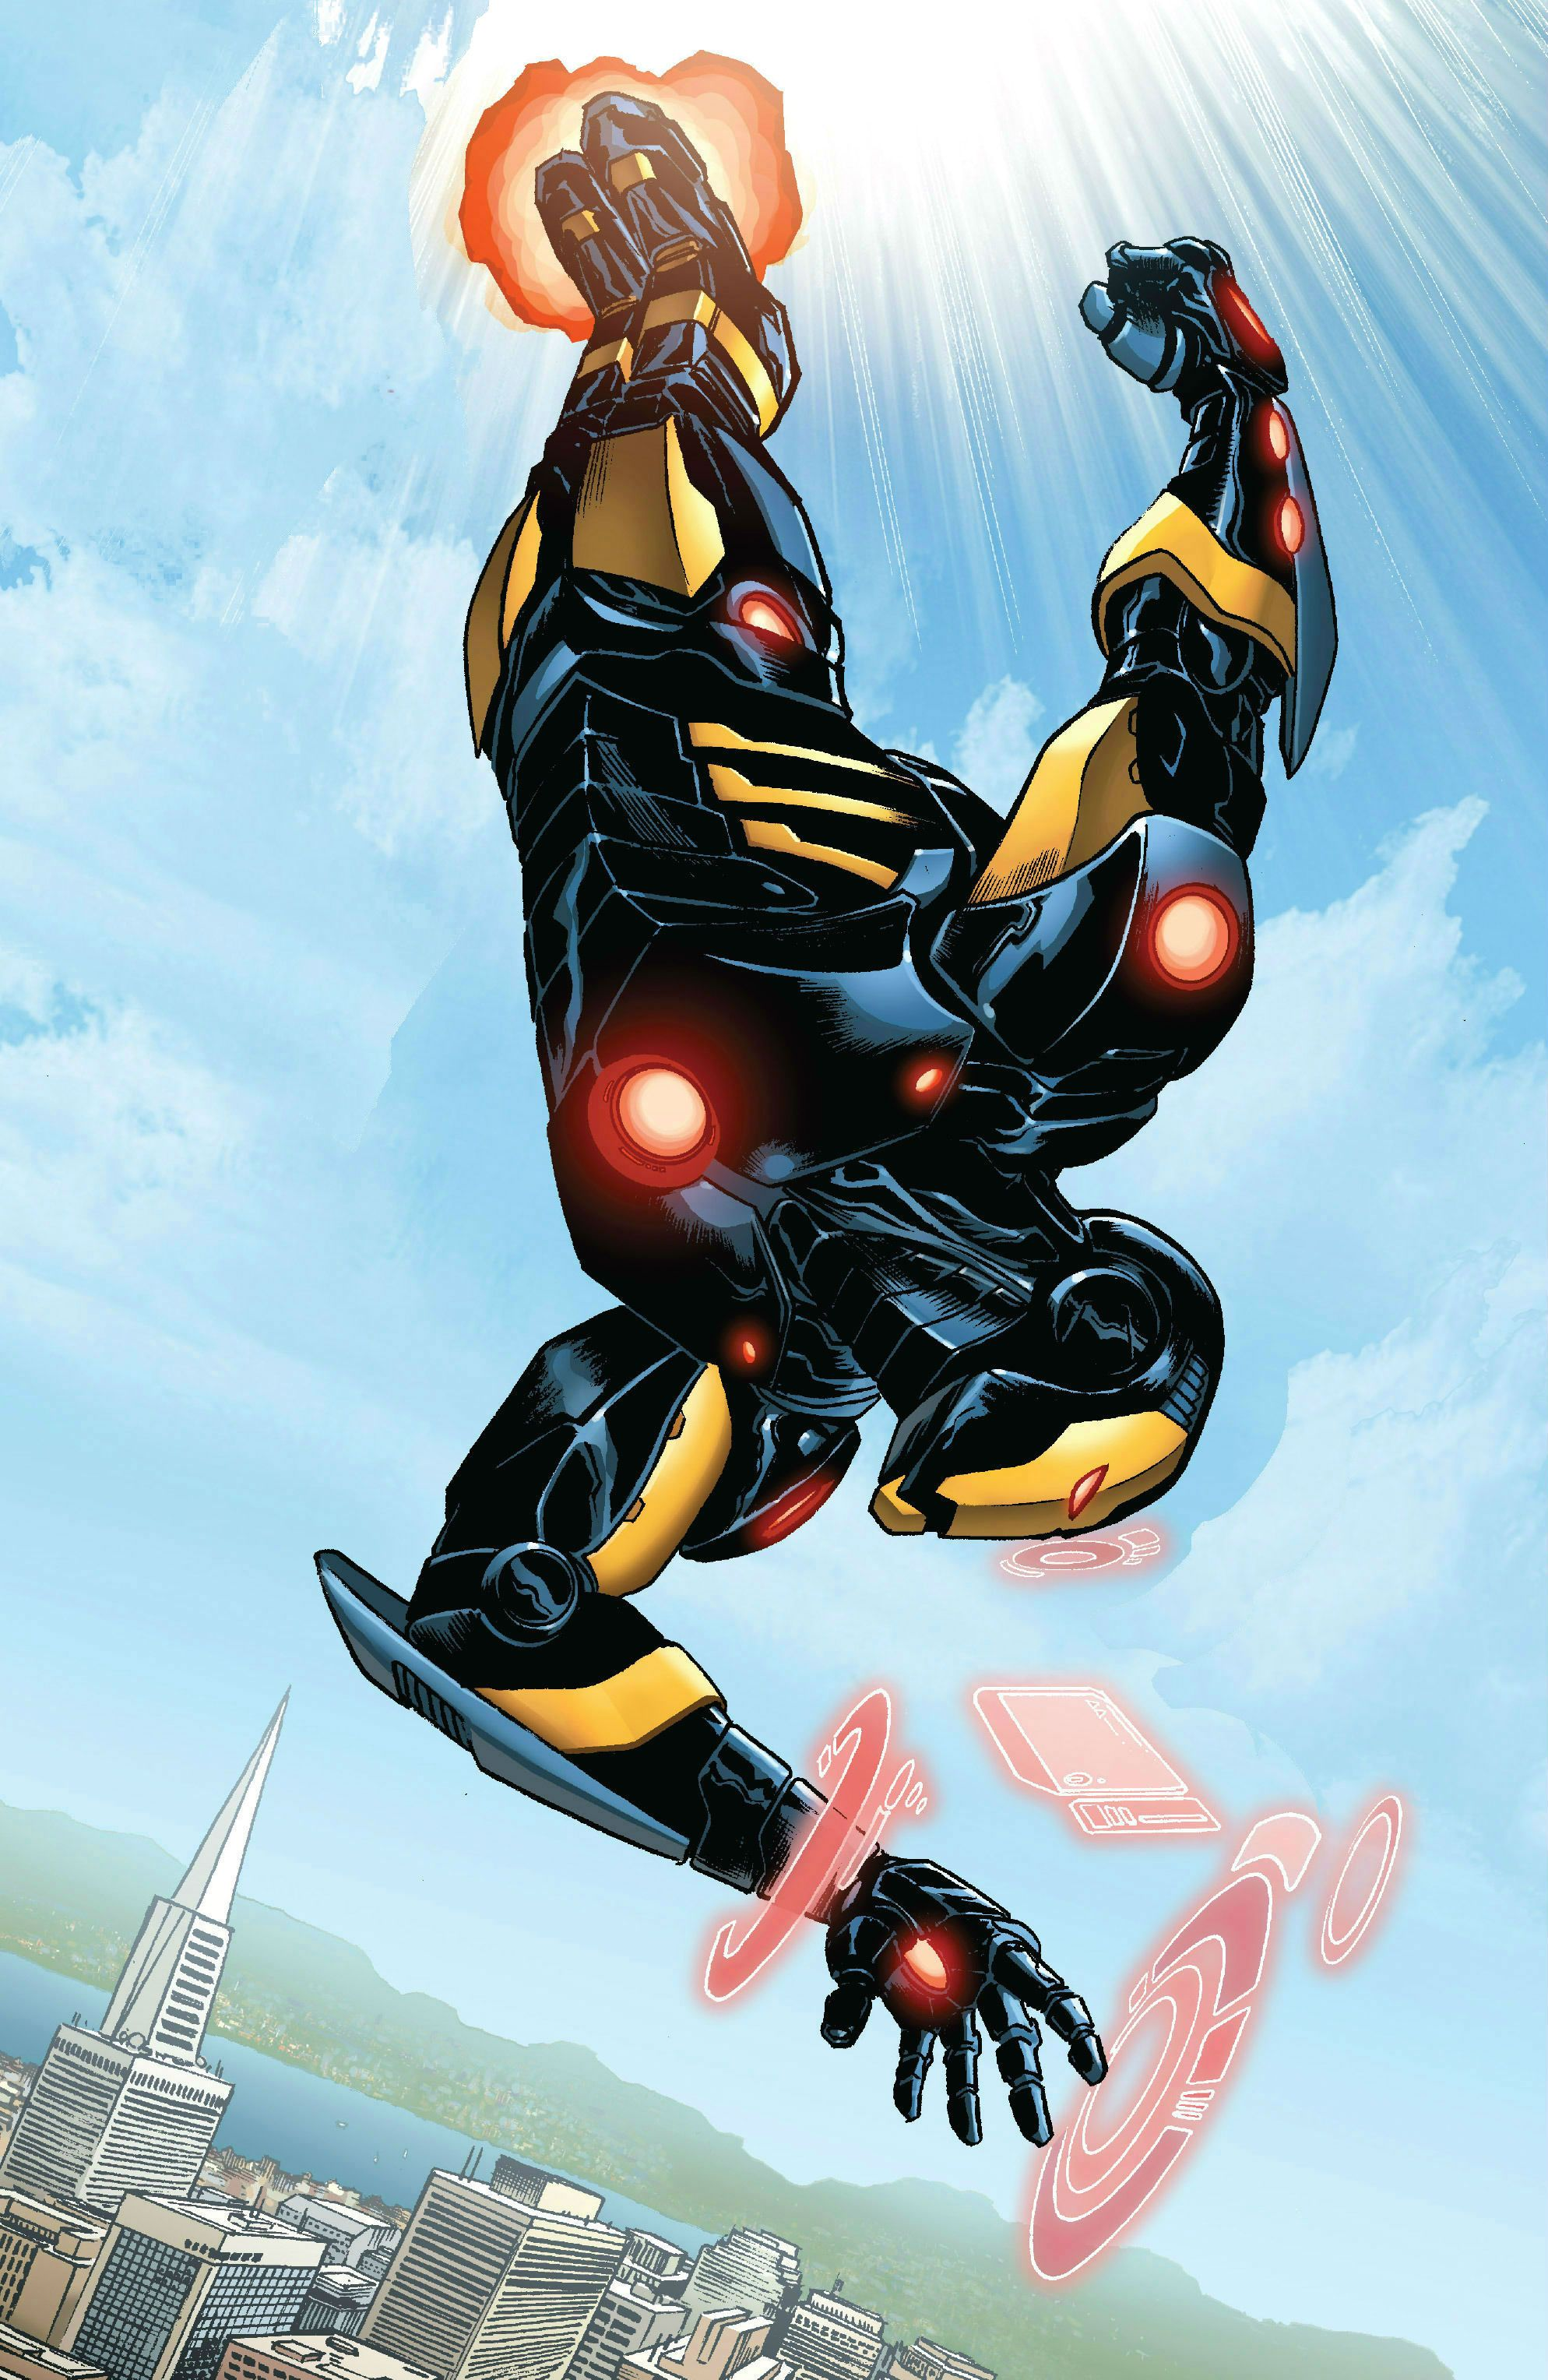 Here S What The New Extremis Armor Will Look Like In Superior Iron Man Iron Man Comic Iron Man Armor Iron Man Comic Books